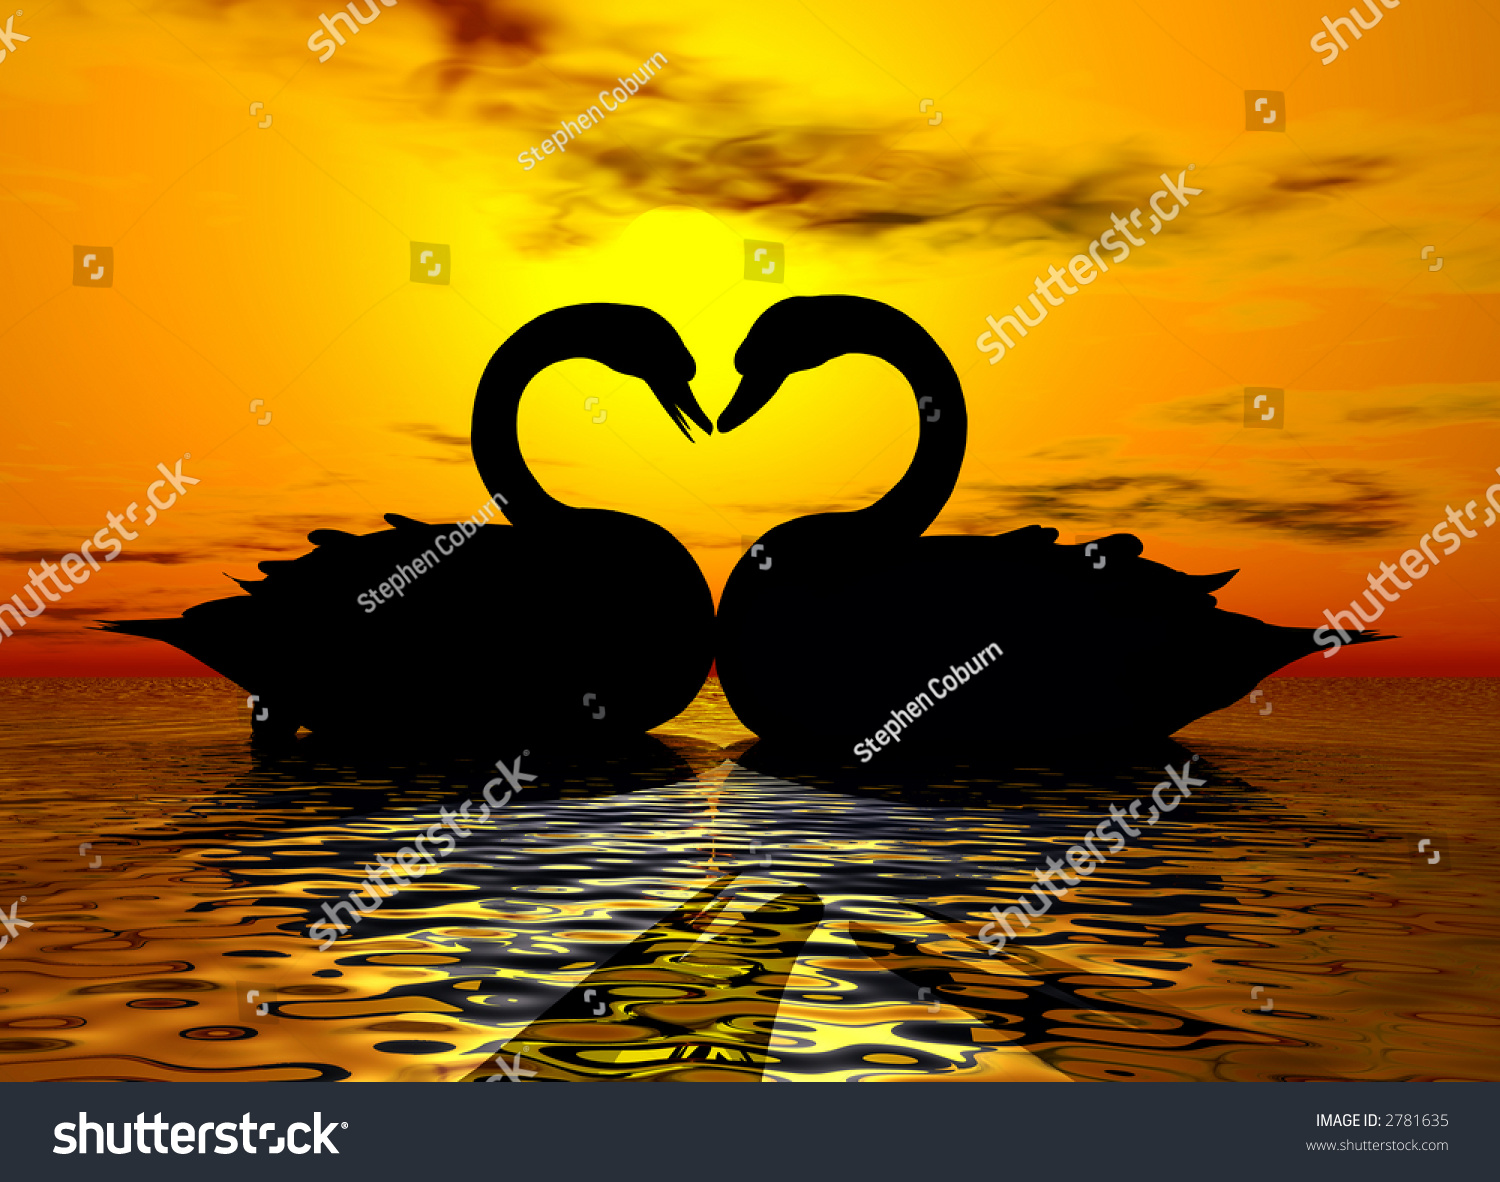 Two Swans Forming A Heart Under The Sunset Stock Photo ...